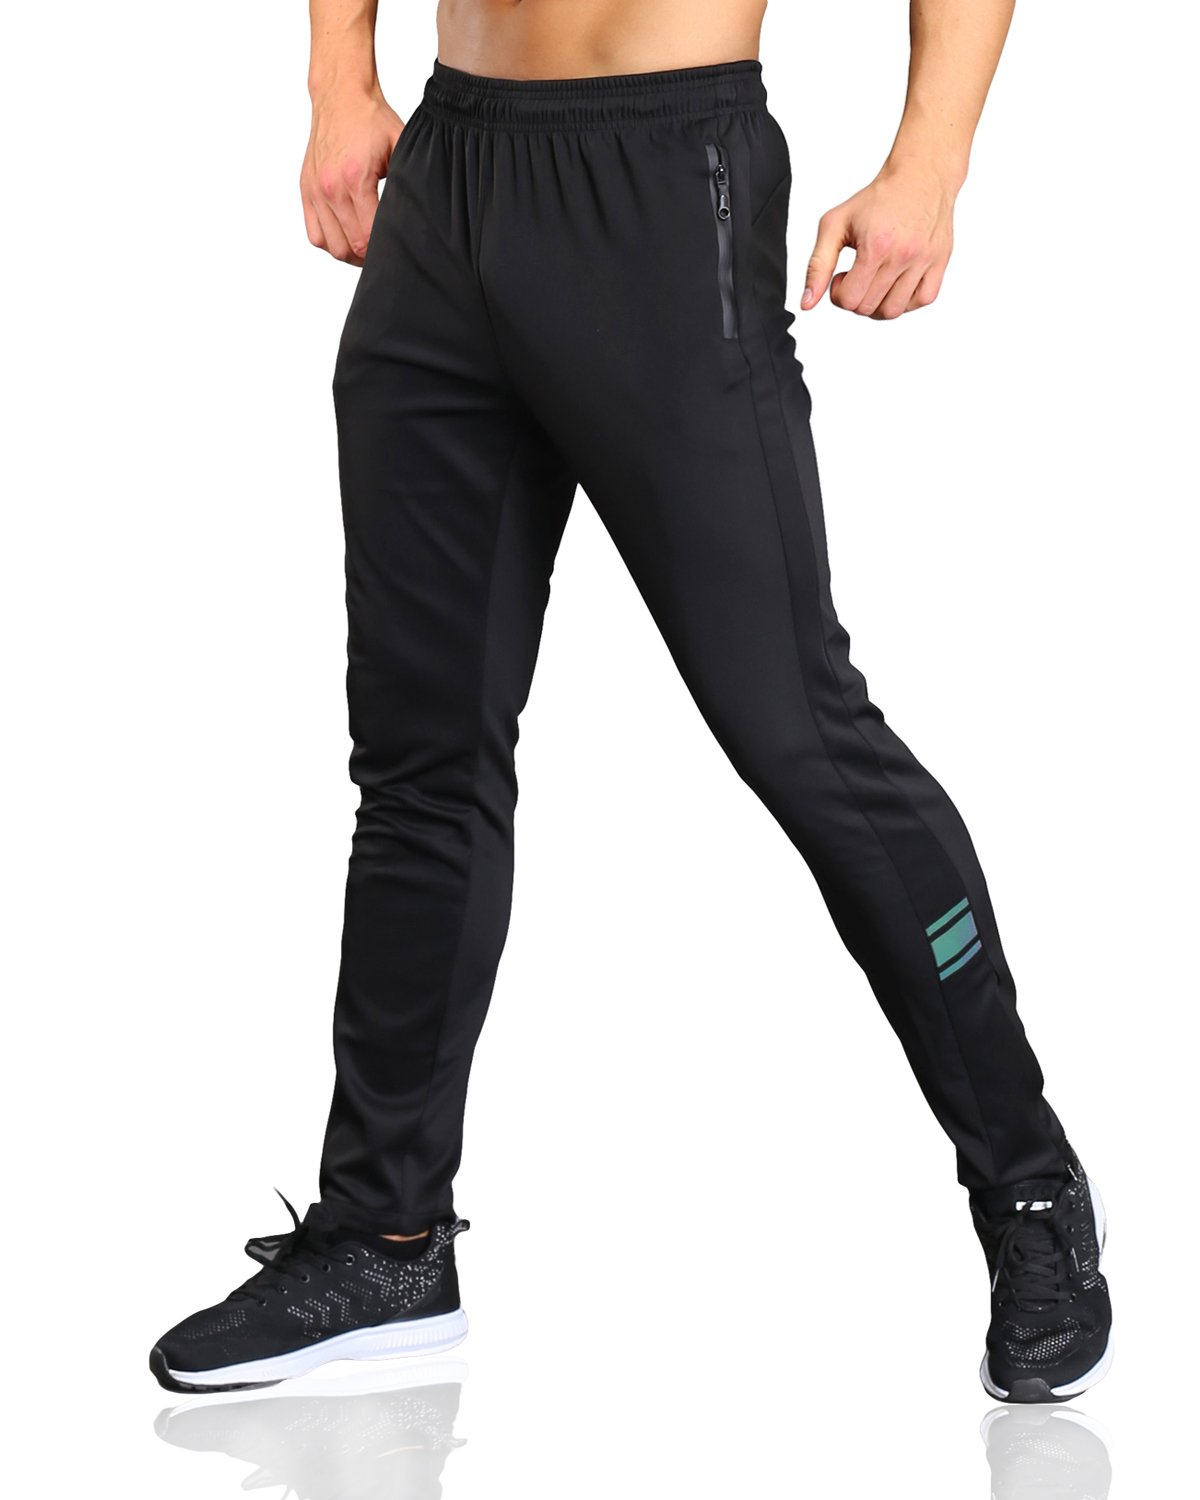 X-Future Mens Basic Hip-hop Drawstring Elastic Waist Jogger Sport Long Pants